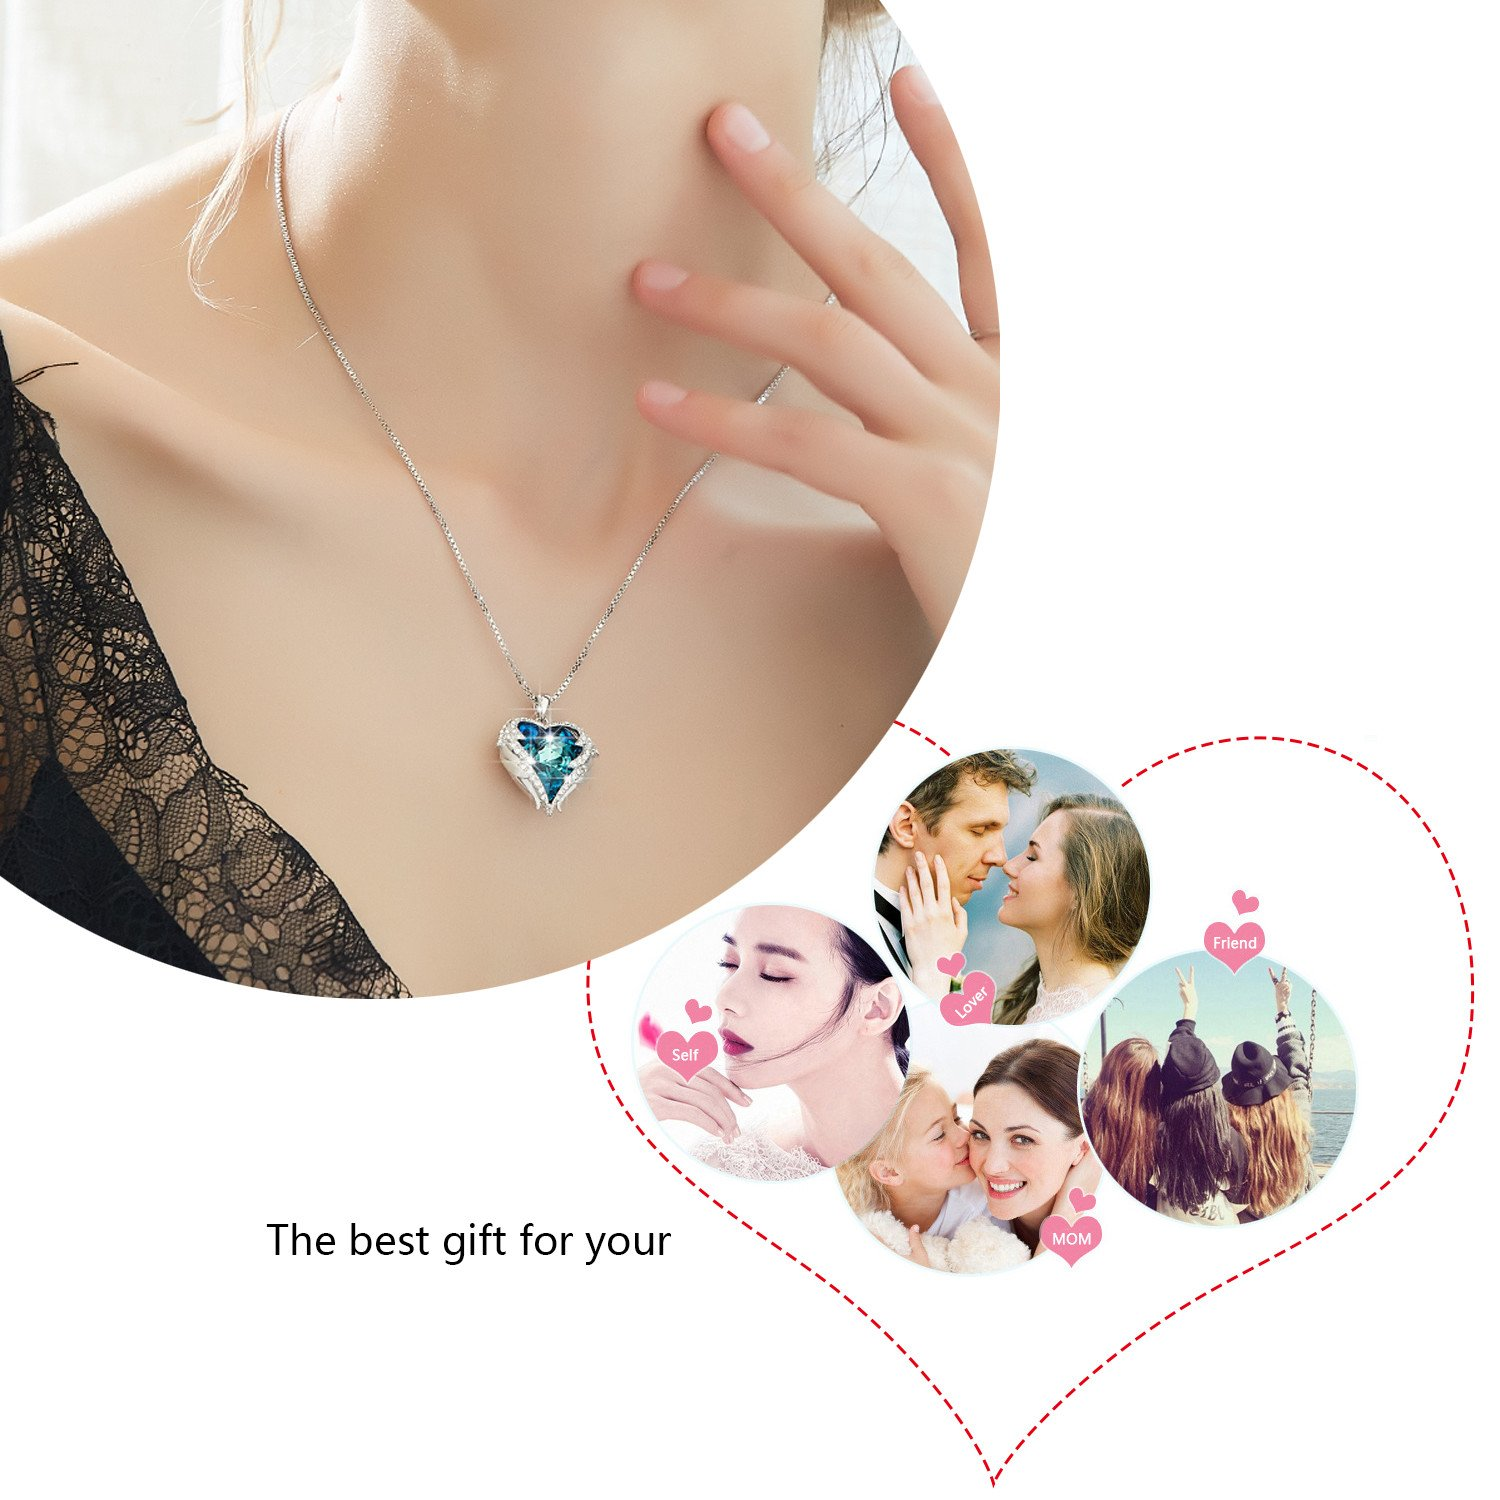 Ancreu Angel Wing Heart Pendant Necklace For Women Made Kalung Love Happiness With Swarovski Crystals B Blue Heartalloy Jewelry